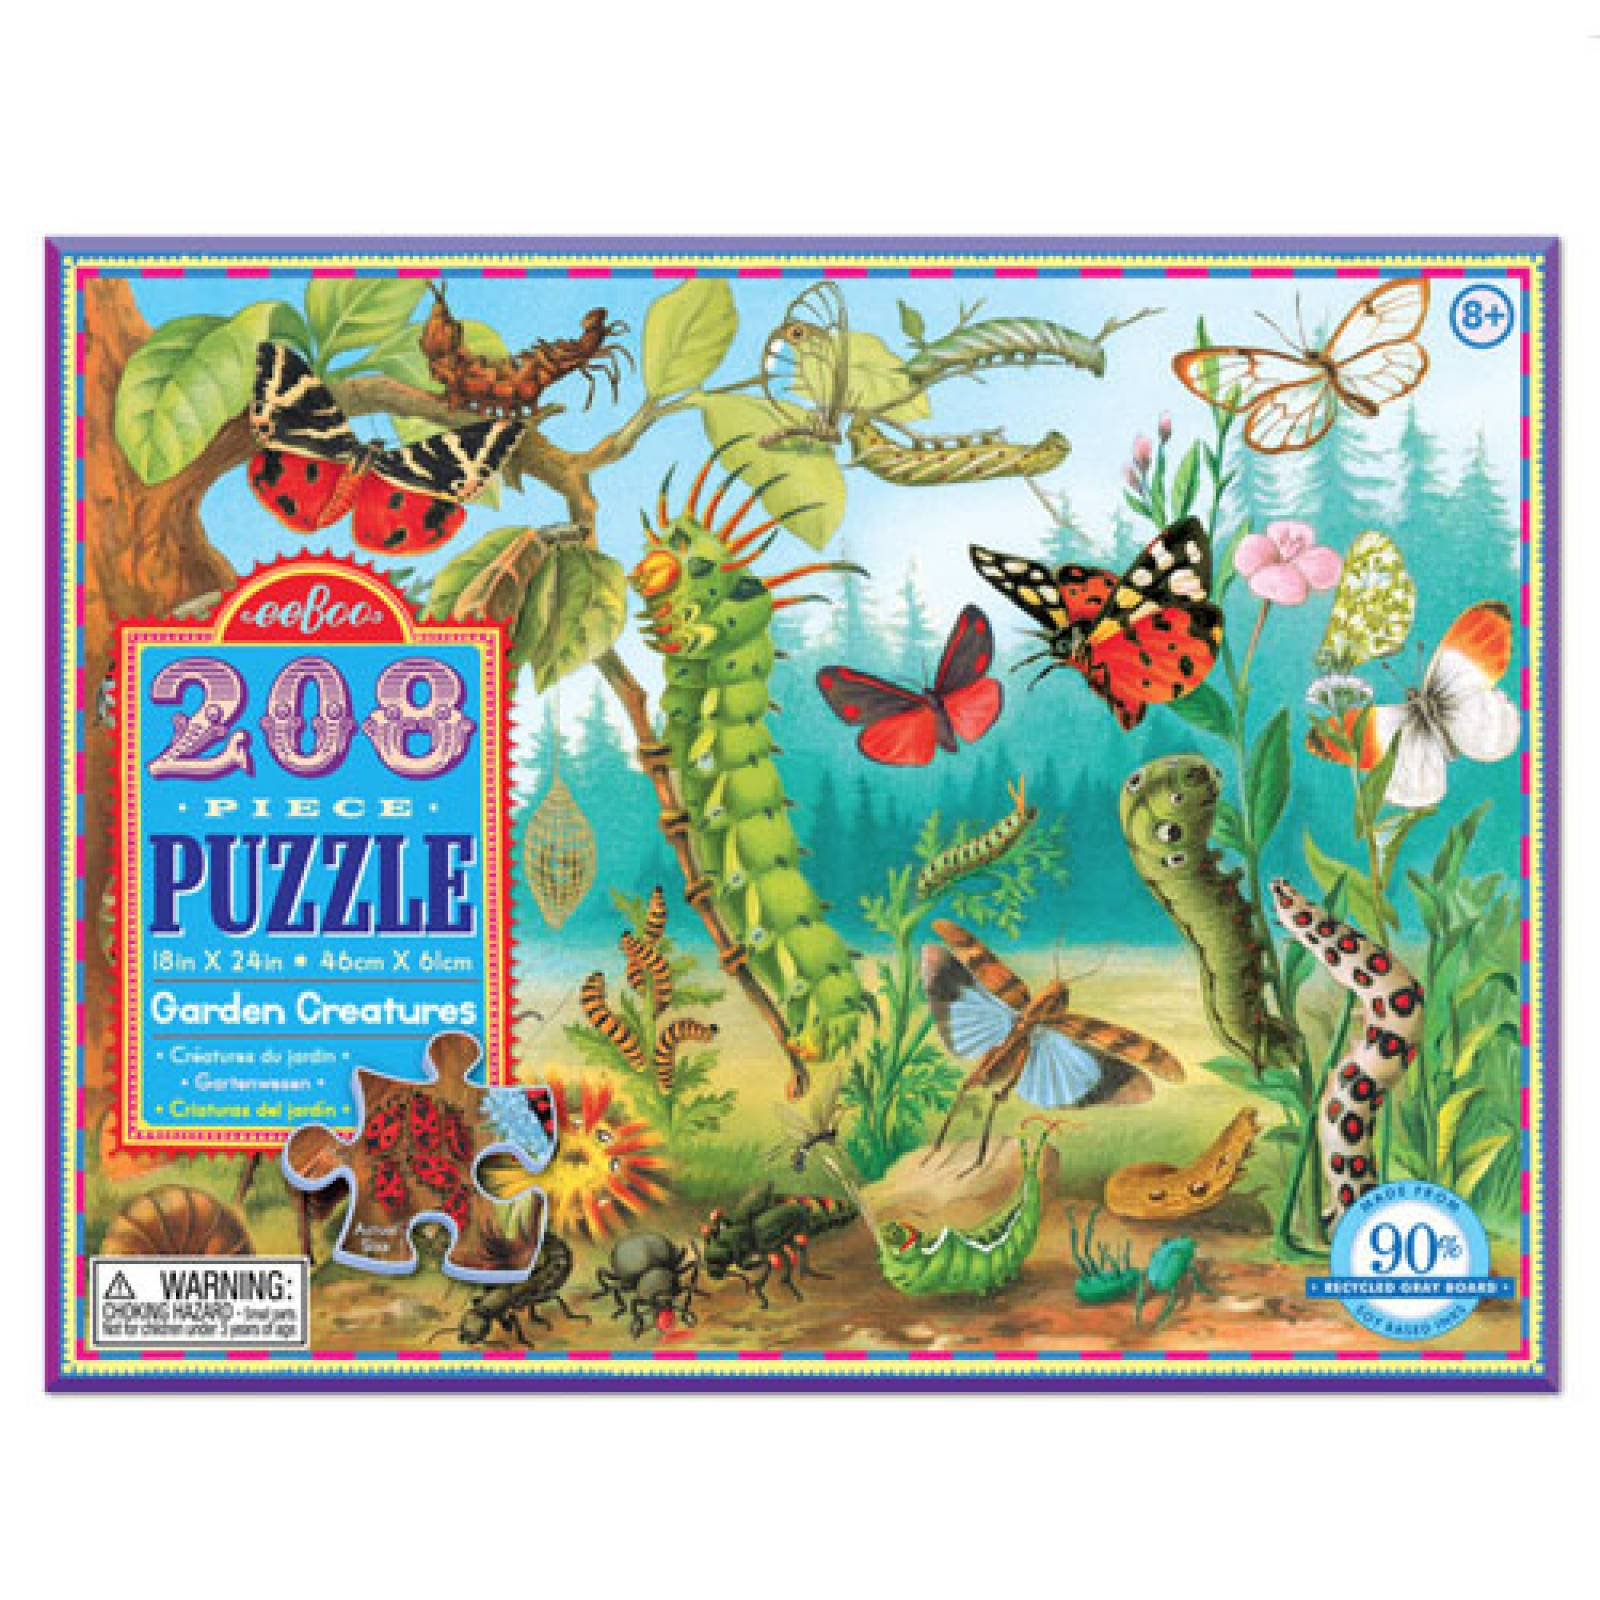 Garden Creatures Jigsaw Puzzle 208 pc by Eeboo 8yr+